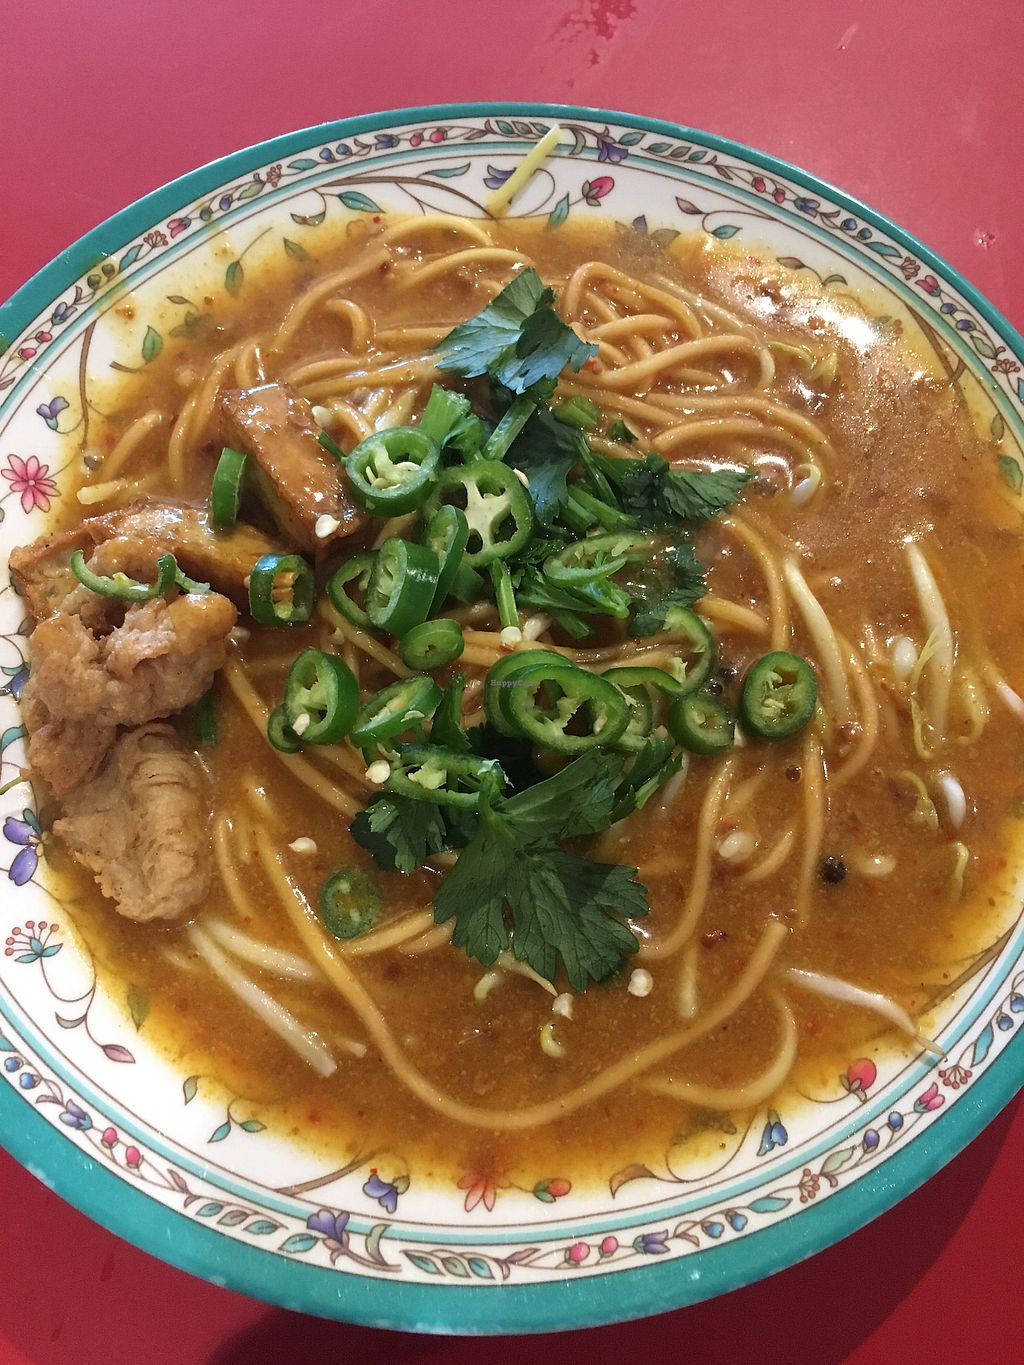 "Photo of Fu Yuan Vegetarian Stall - ABC Brickworks Market  by <a href=""/members/profile/xiaomei"">xiaomei</a> <br/>Mee Rebus <br/> January 30, 2018  - <a href='/contact/abuse/image/100137/352738'>Report</a>"